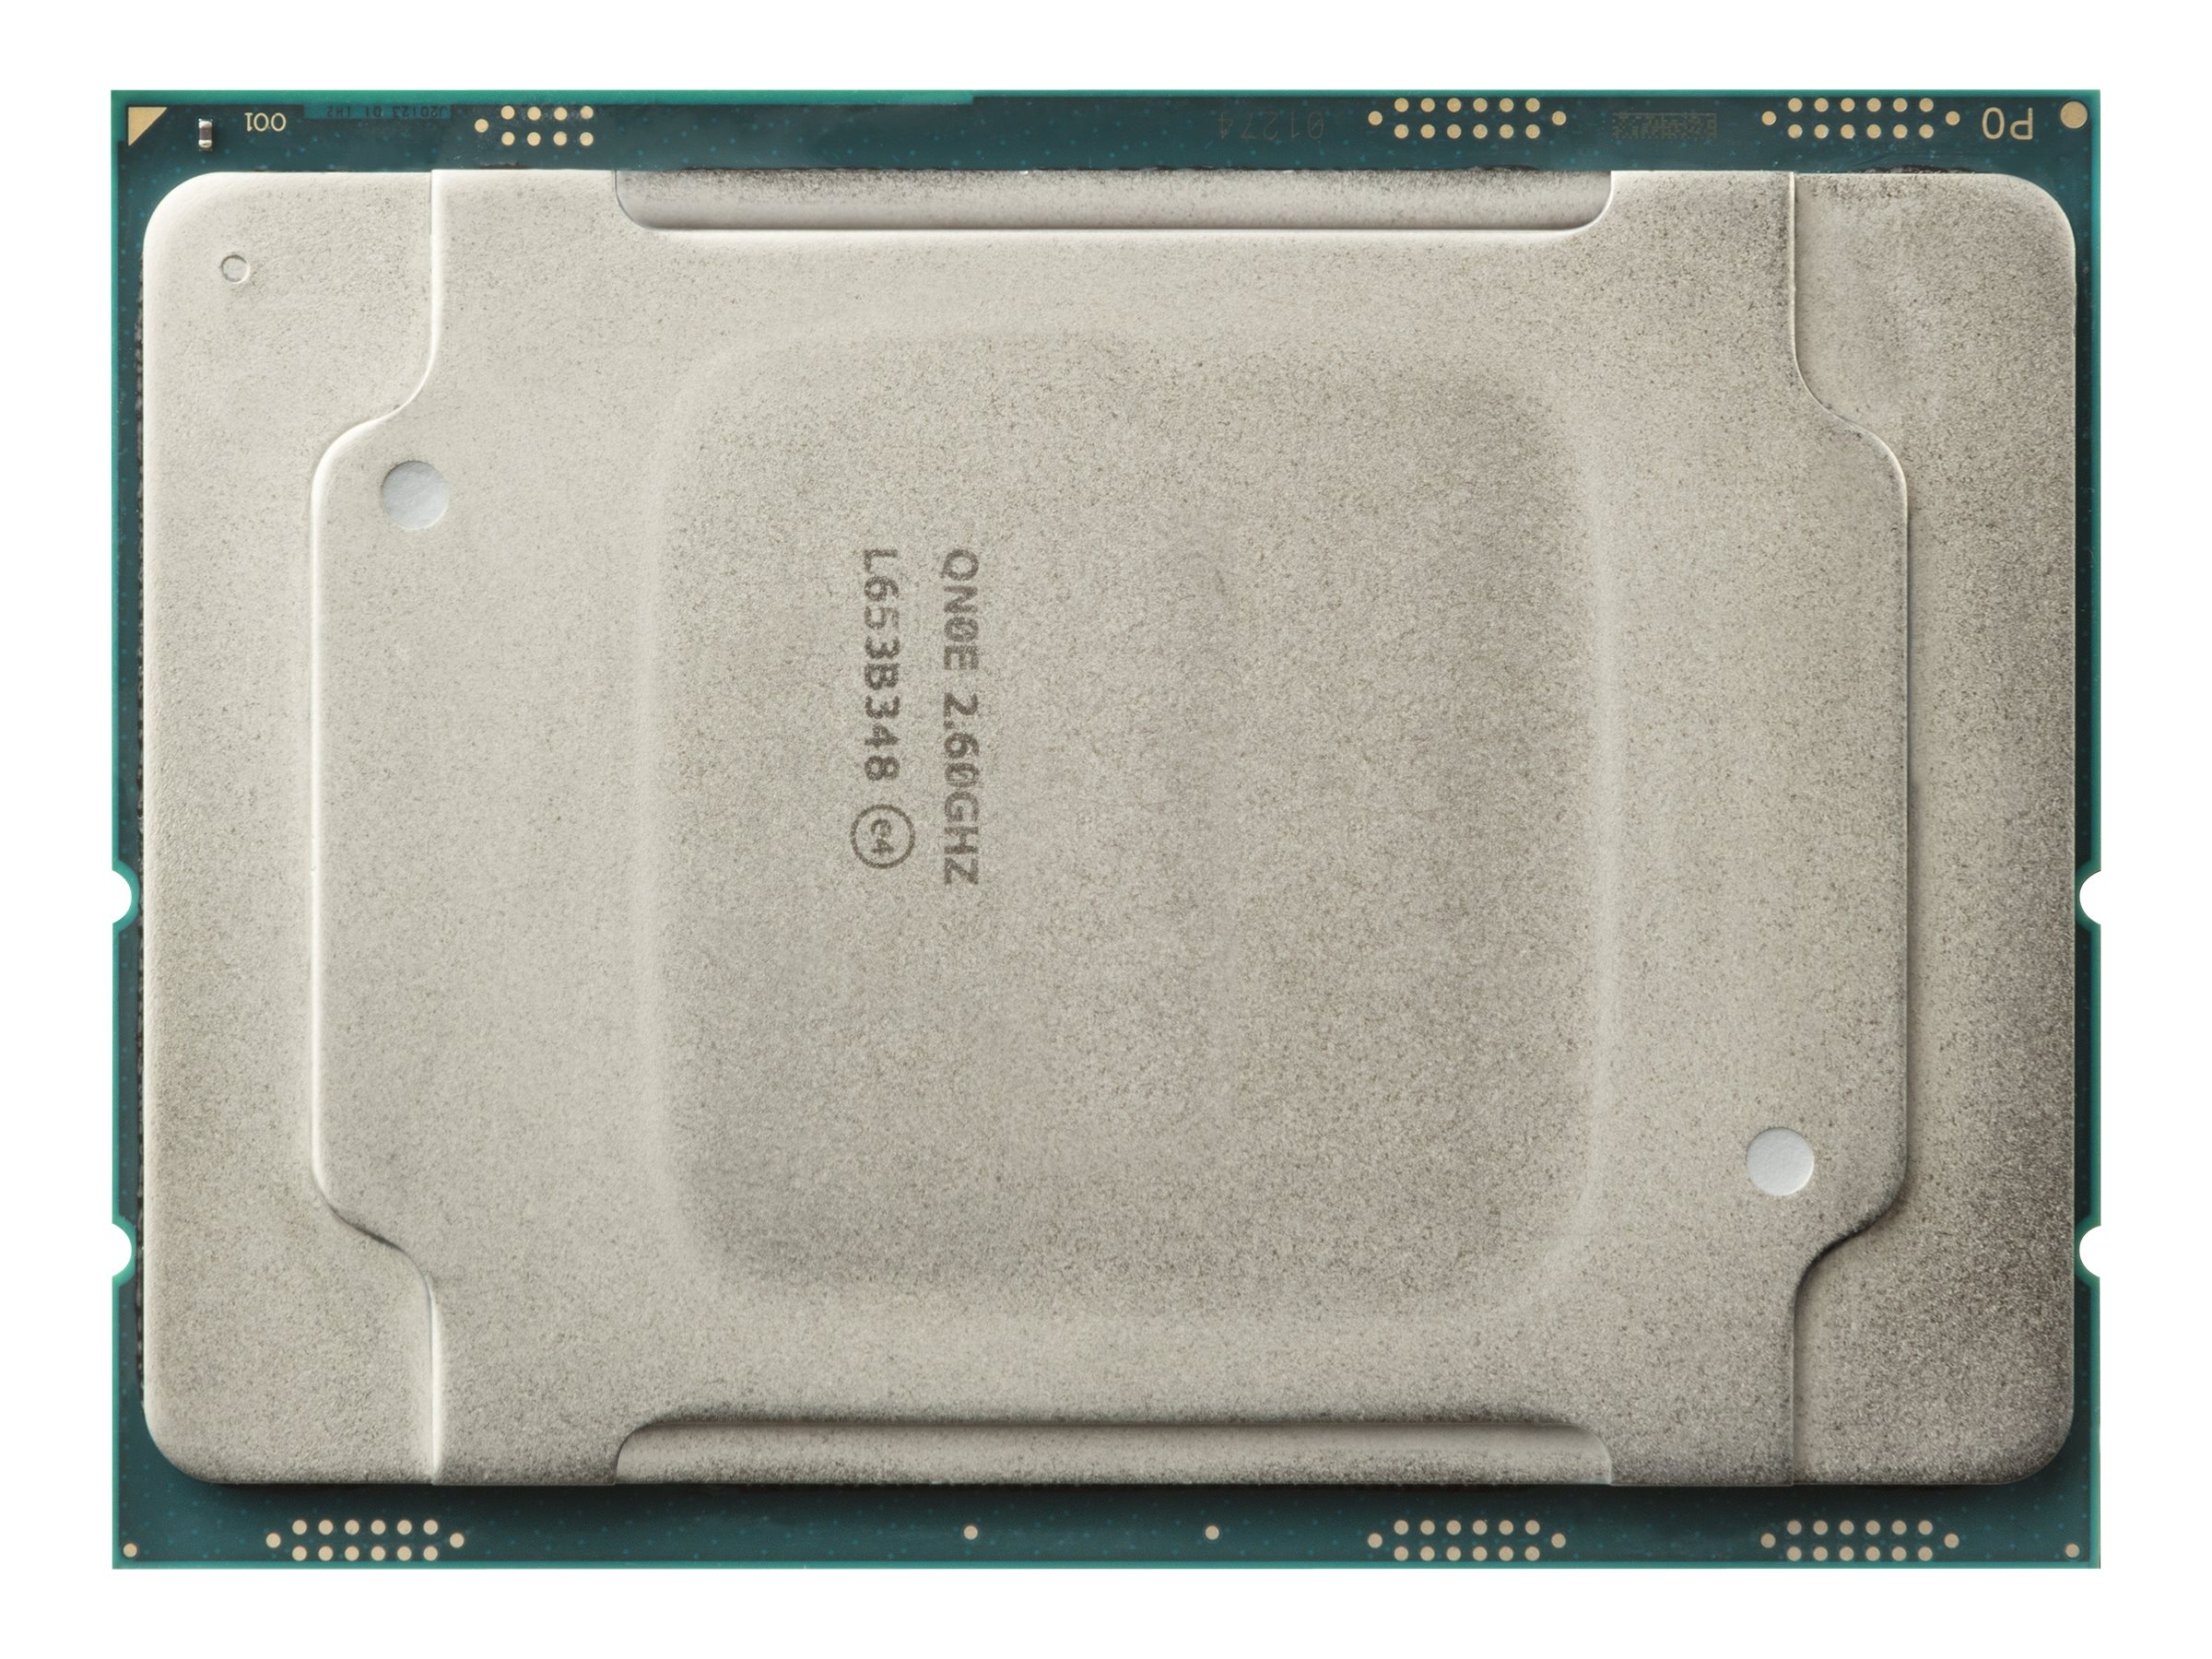 Intel Xeon Gold 6136 / 3 GHz processor